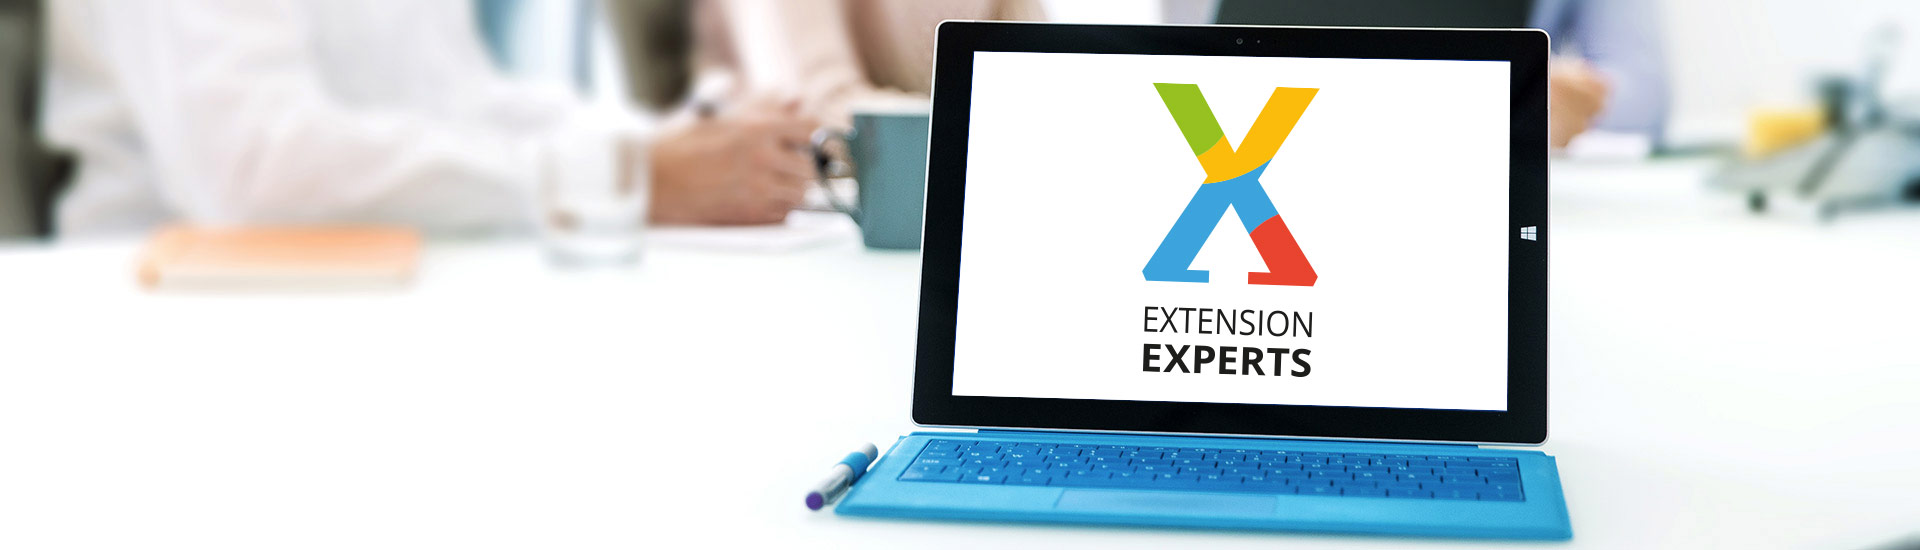 Extension Experts - das NAV Anwenderforum